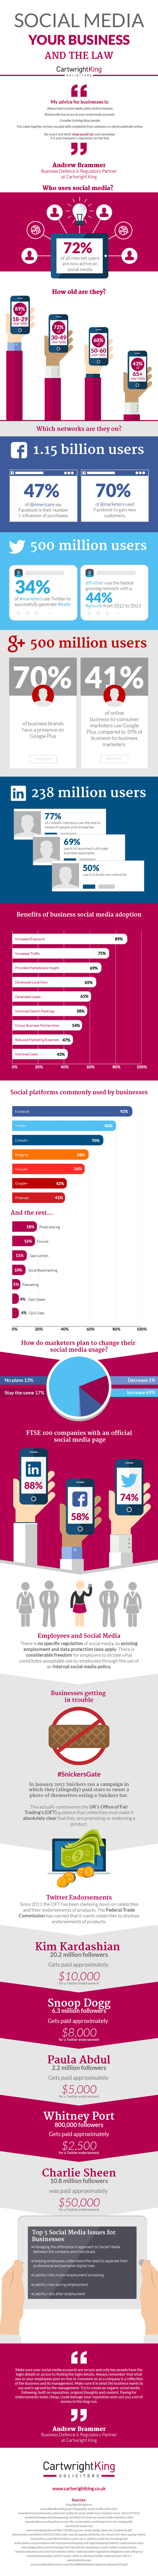 Social Media, Your Business and the Law  - #infographic